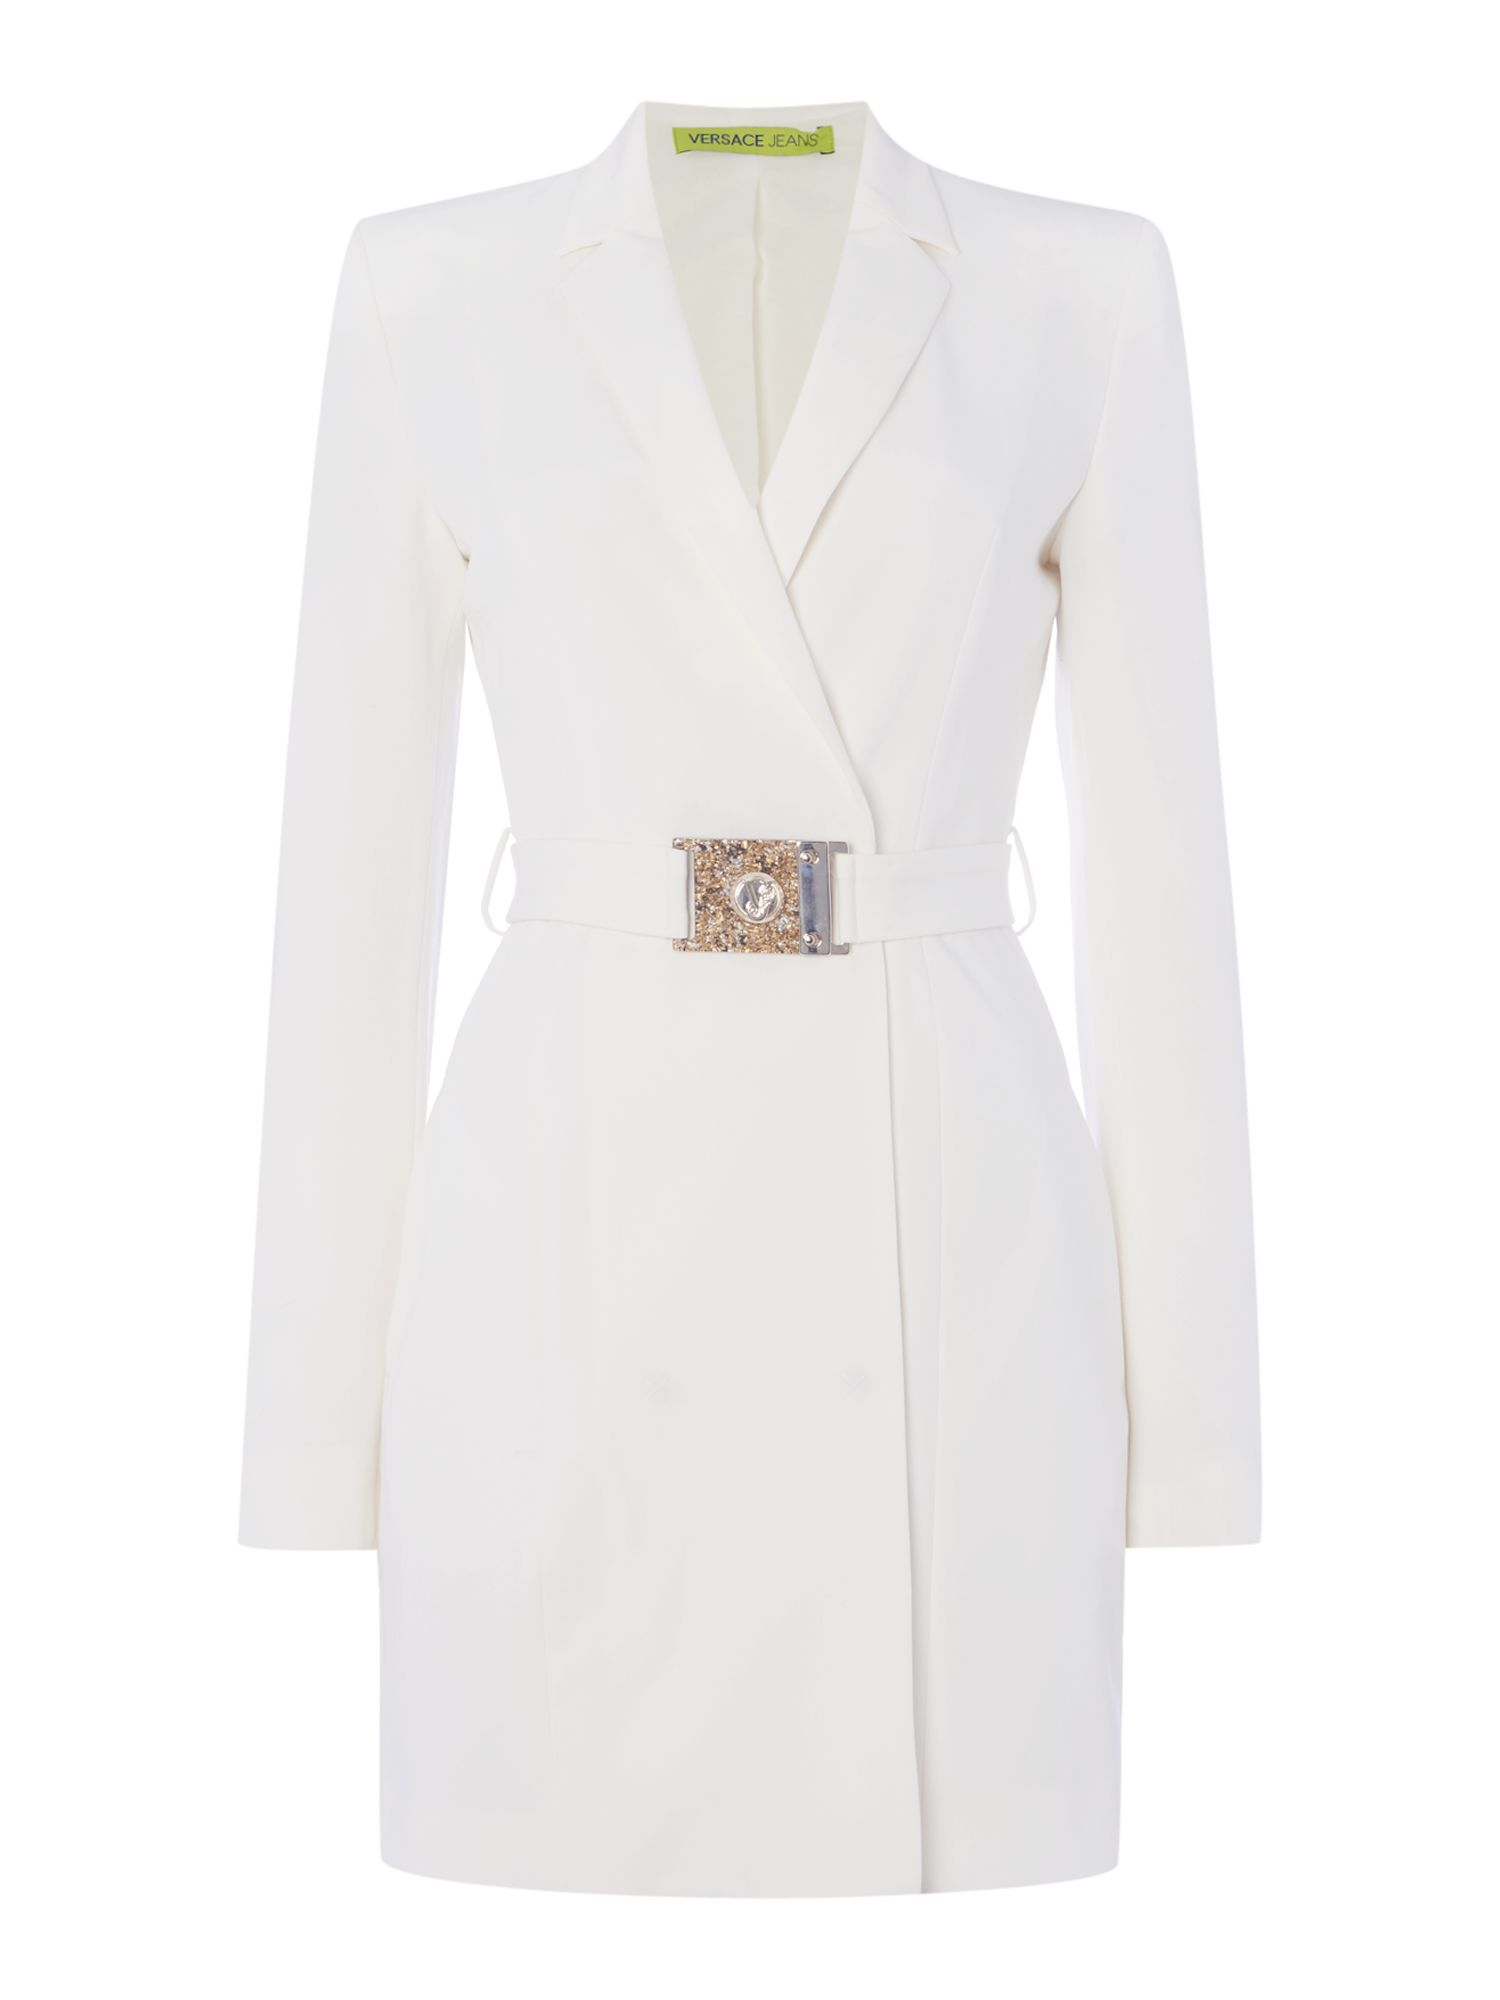 Versace jeans Long Blazer Jacket With Belt in White | Lyst